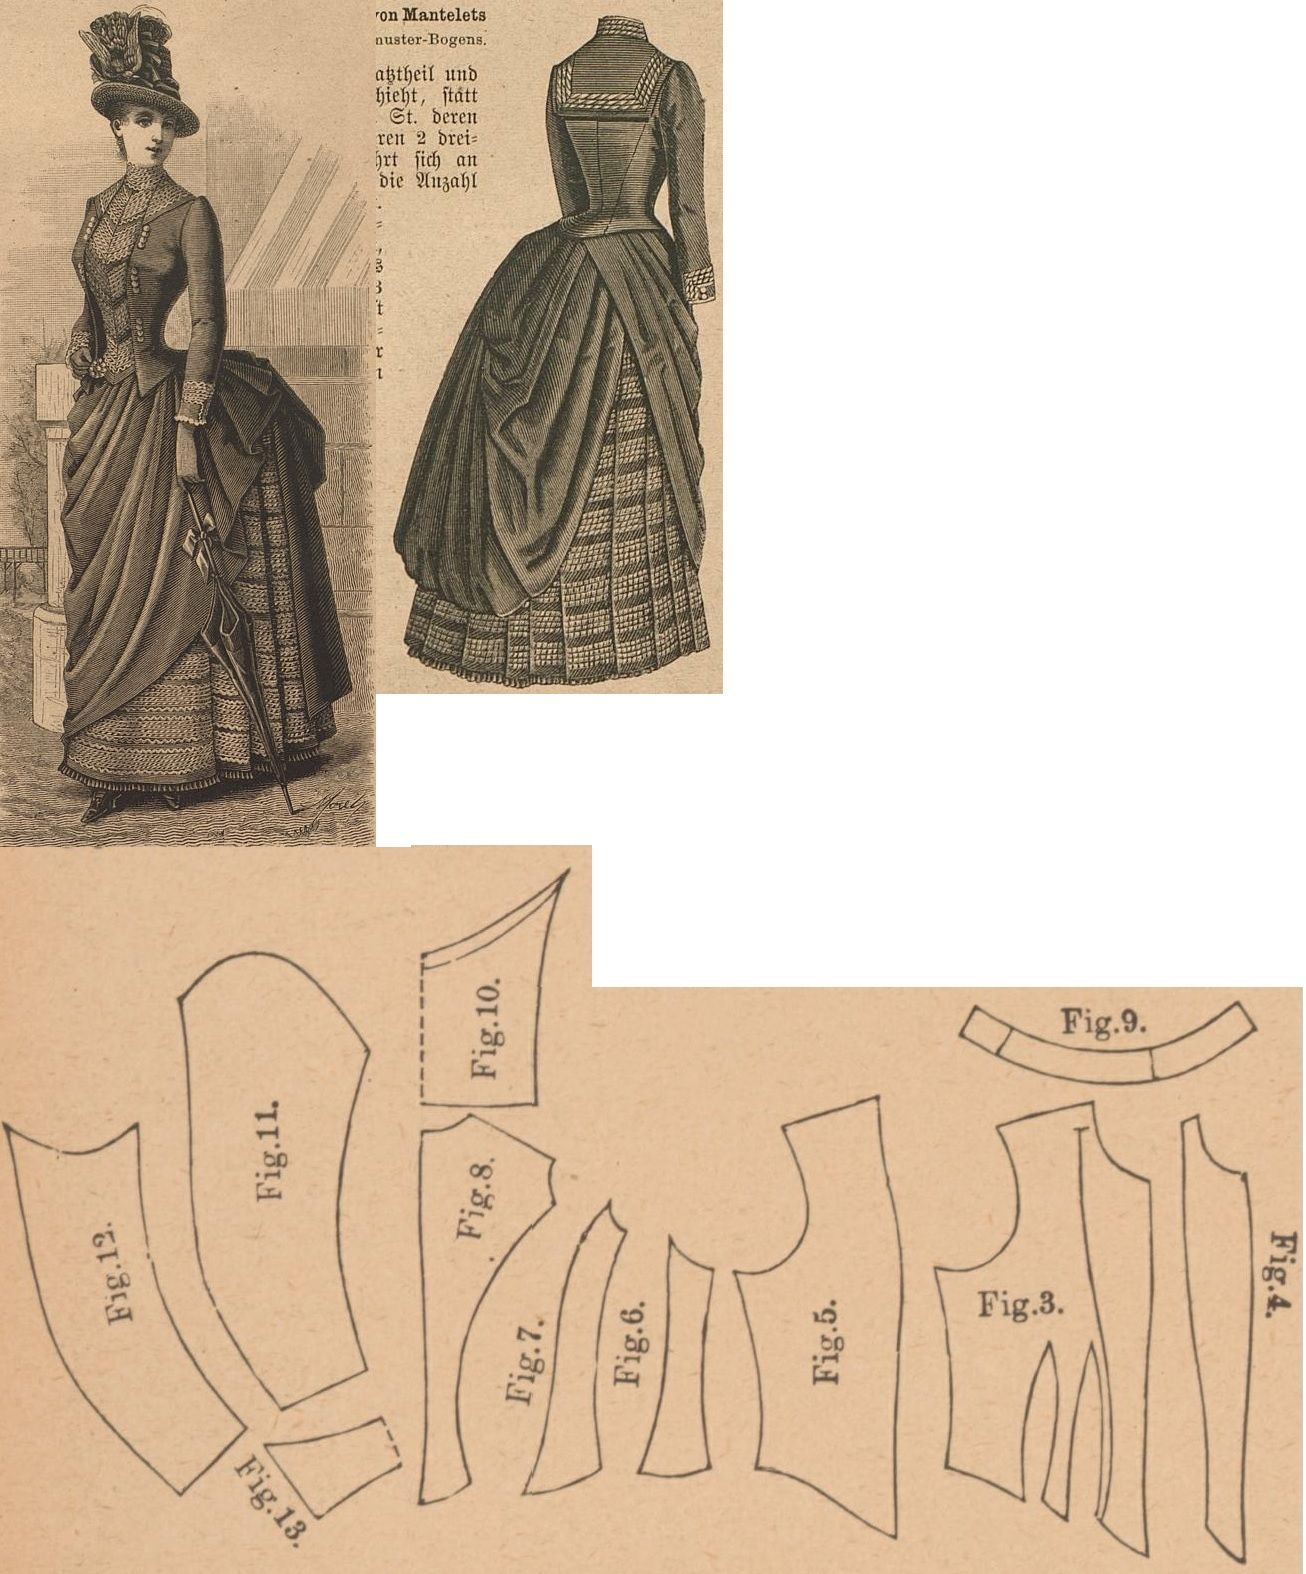 Der Bazar 1886: Summer dress from blue etamine fabric with á jour trimming; 3. bodice's front lining part, 4. plastron, 5. bodice's front over part, 6. and 7. side gores, 8. back part, 9. standing collar, 10. sailor collar in half size, 11. and 12. sleeve parts, 13. cuff in half size